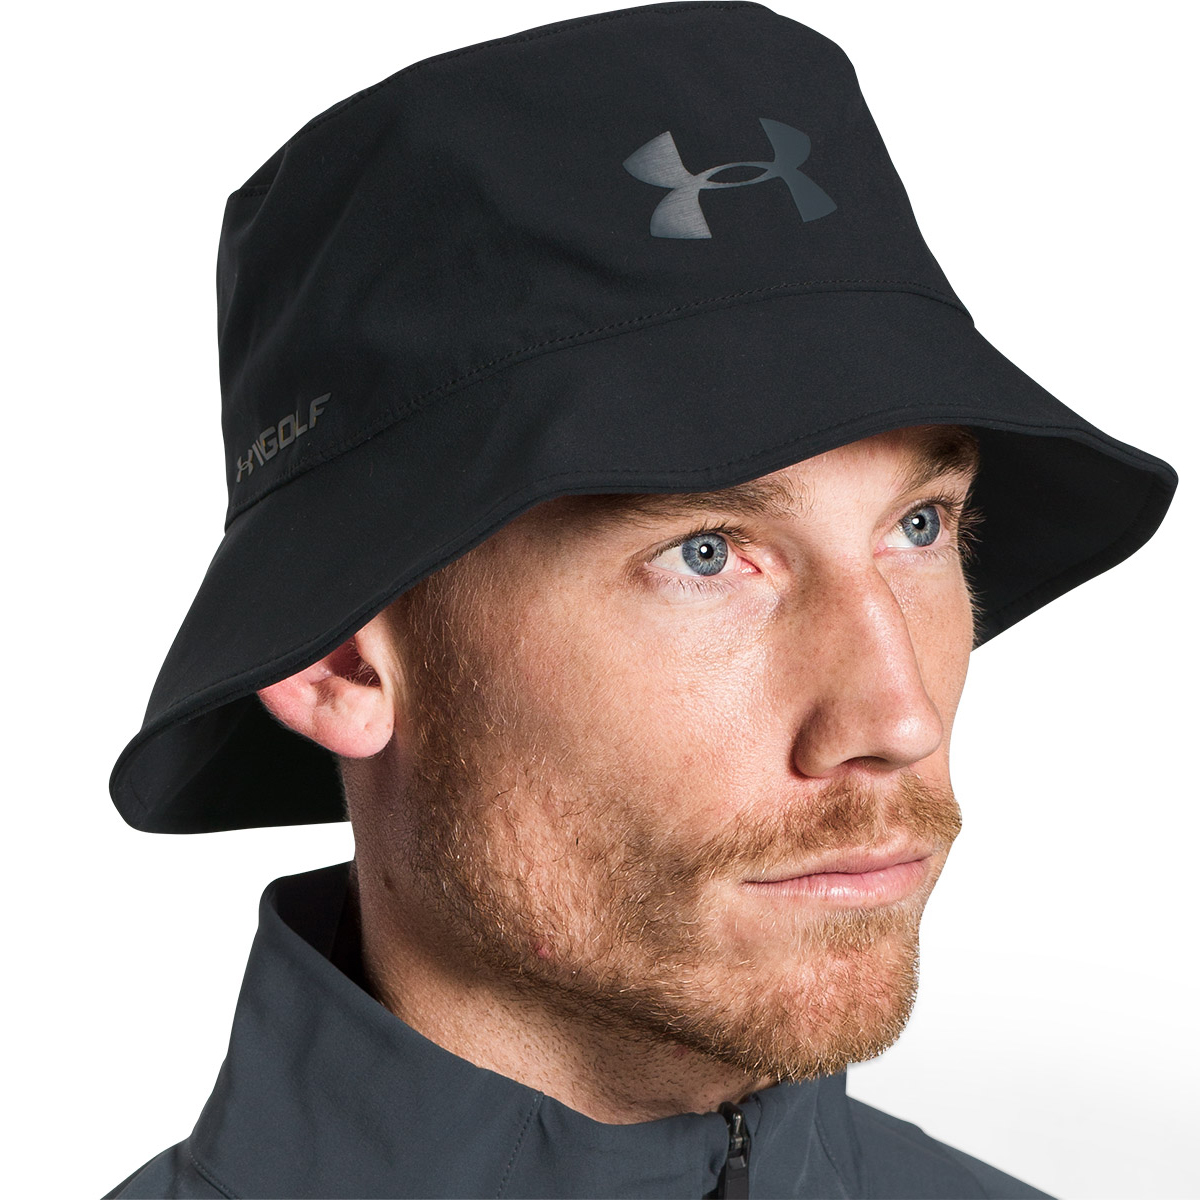 630a4796be1 Under Armour GORE-TEX Bucket Hat